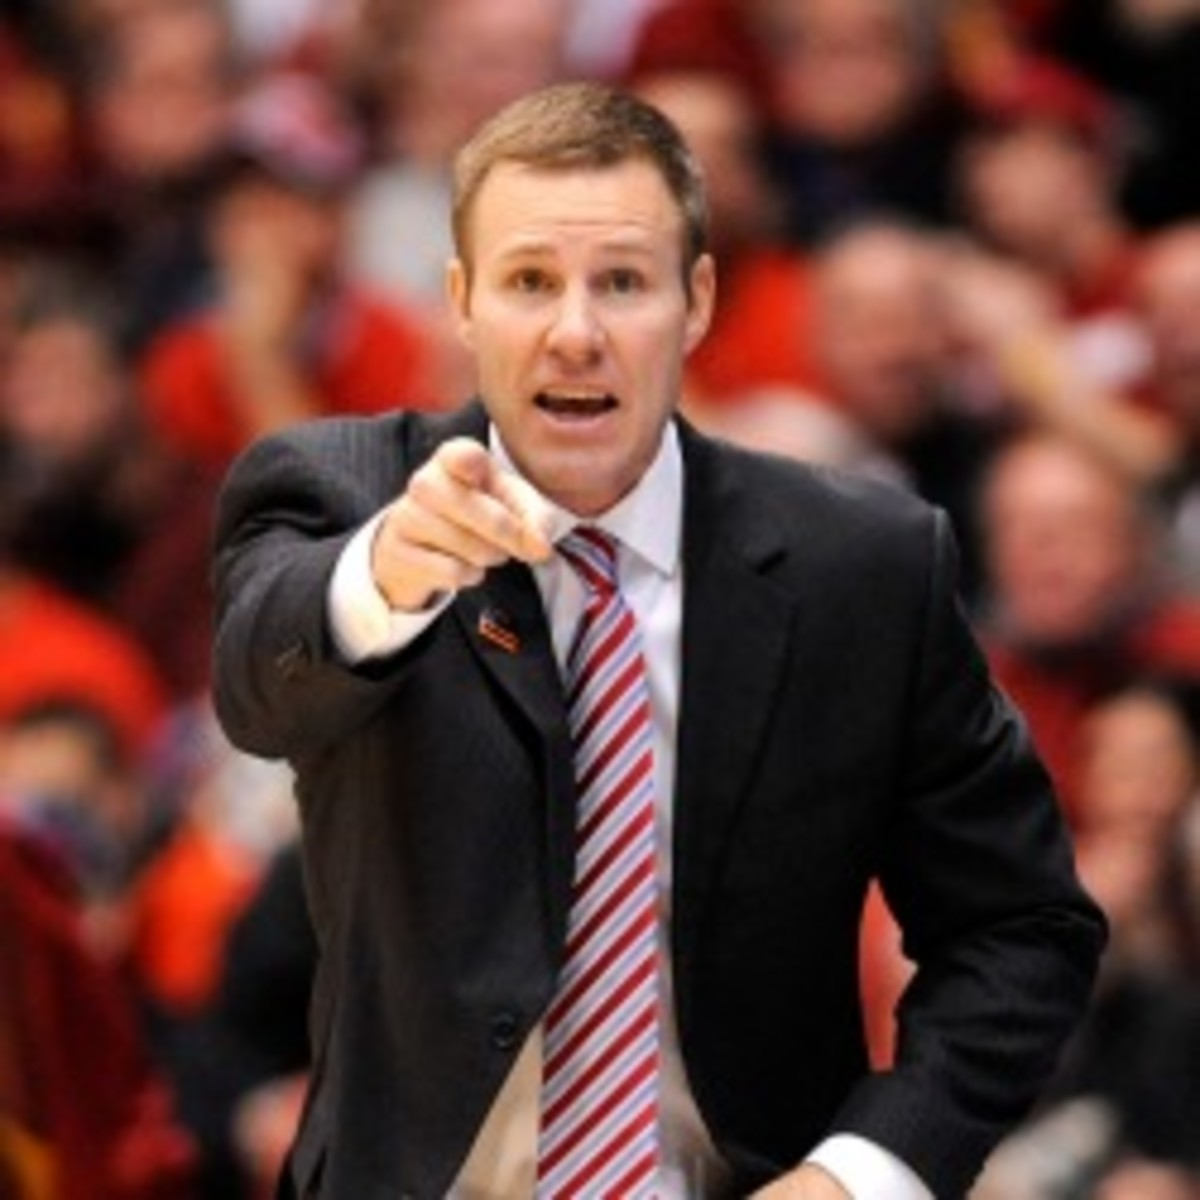 Iowa State coach Fred Hoiberg signed a 10-year extension worth $20 million. (Jason Miller/Getty Images)